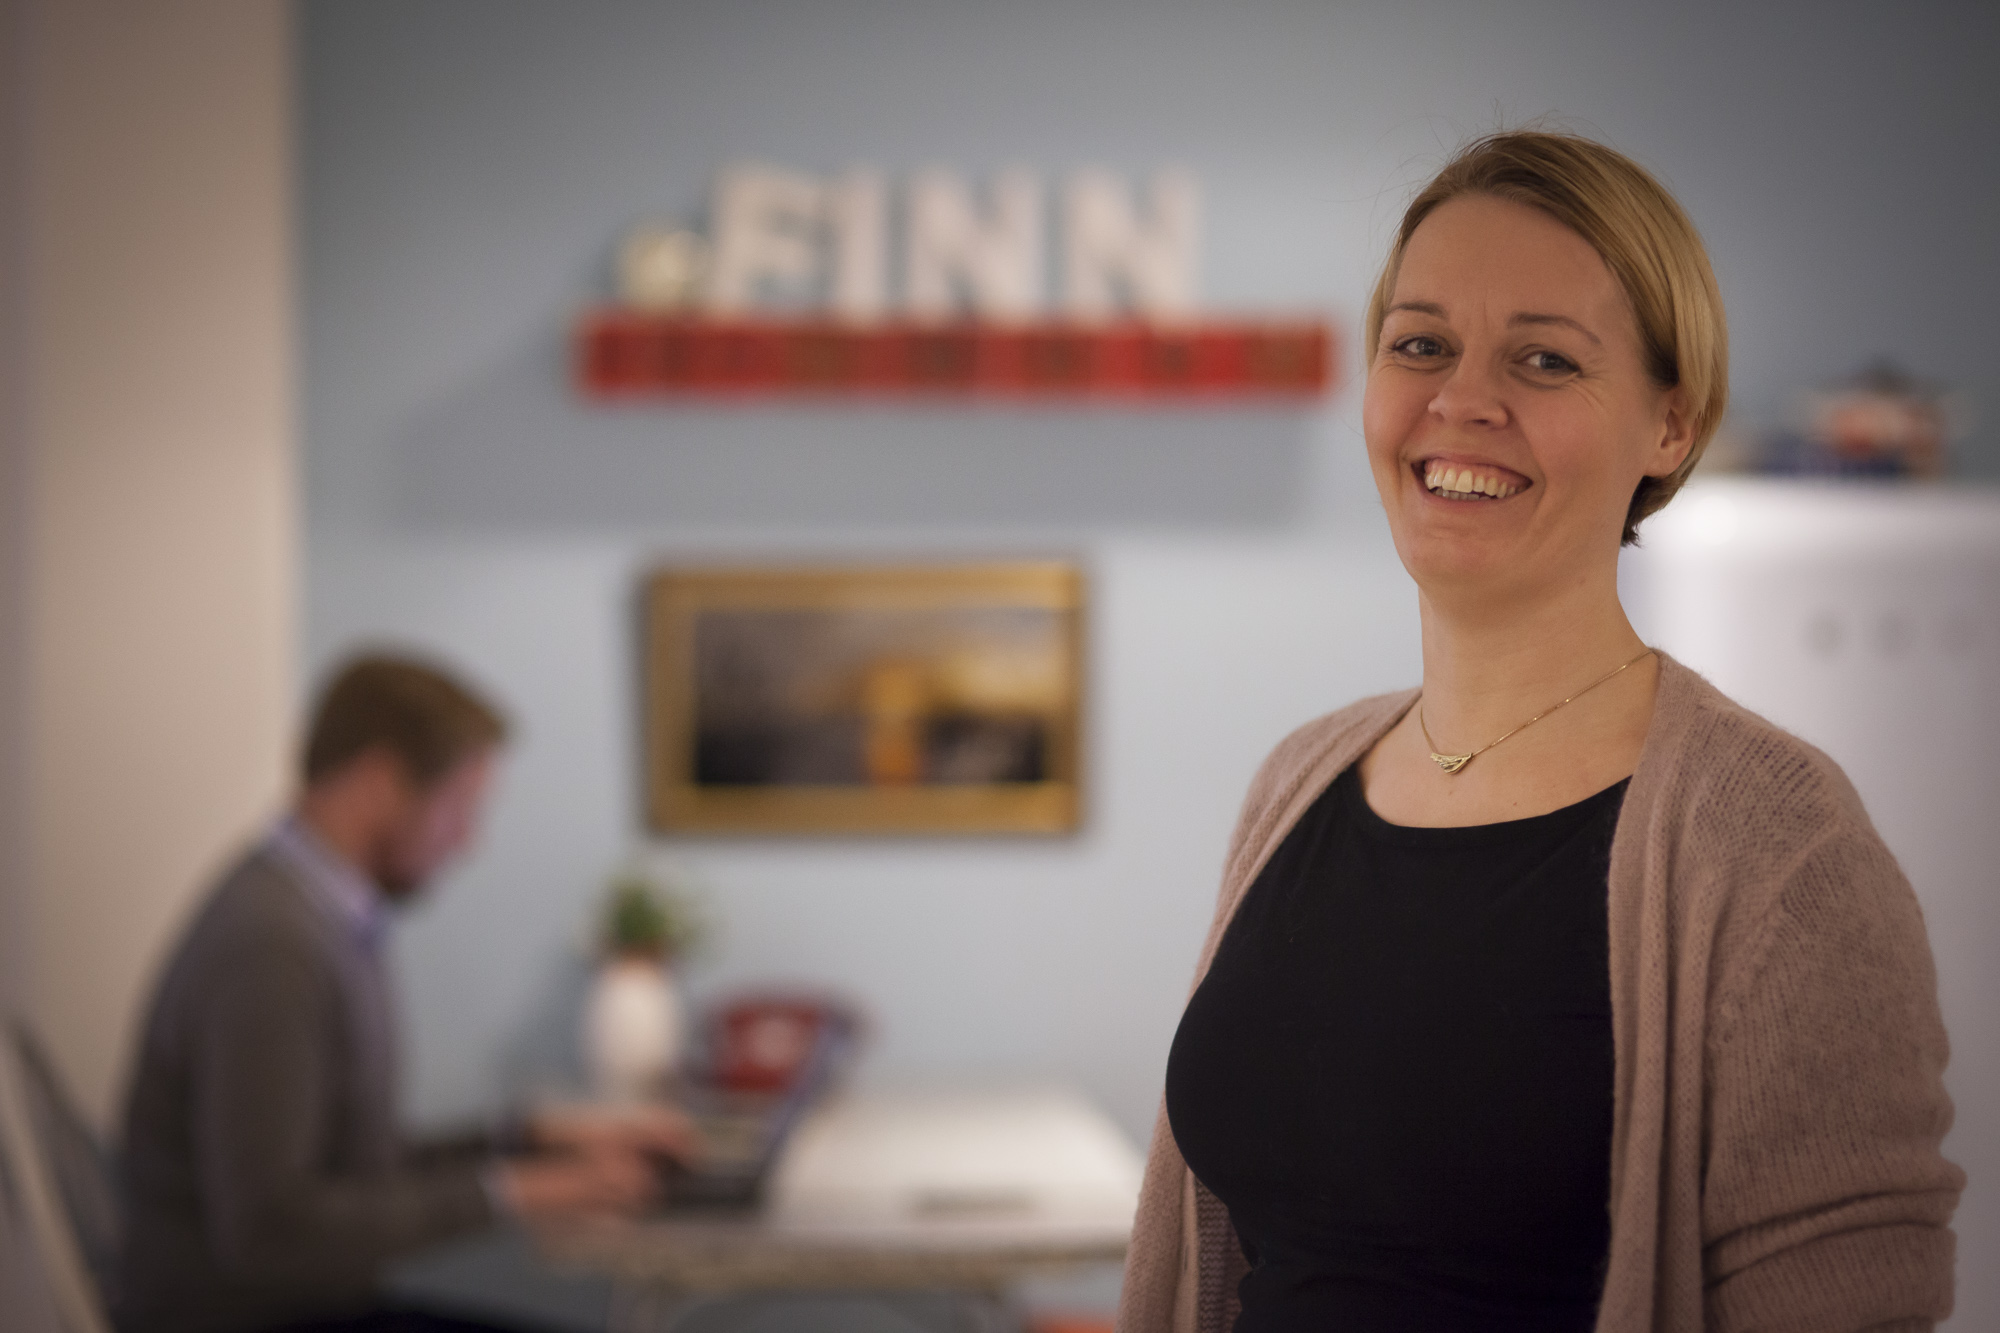 Bente Ulvestad is team leader at Finn.no in Oslo